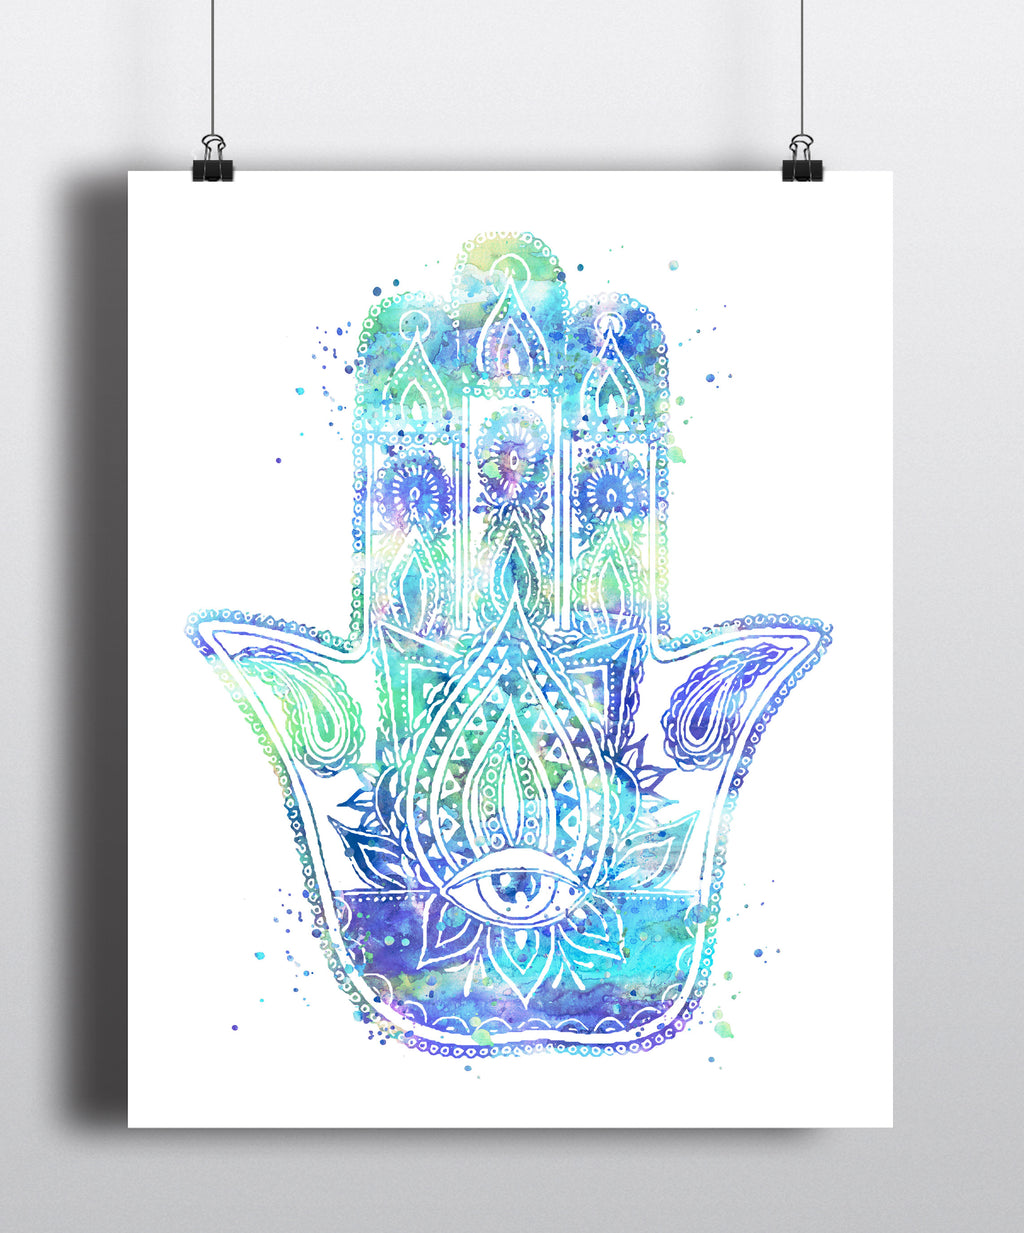 Hamsa Hand Watercolor Art Print - Unframed